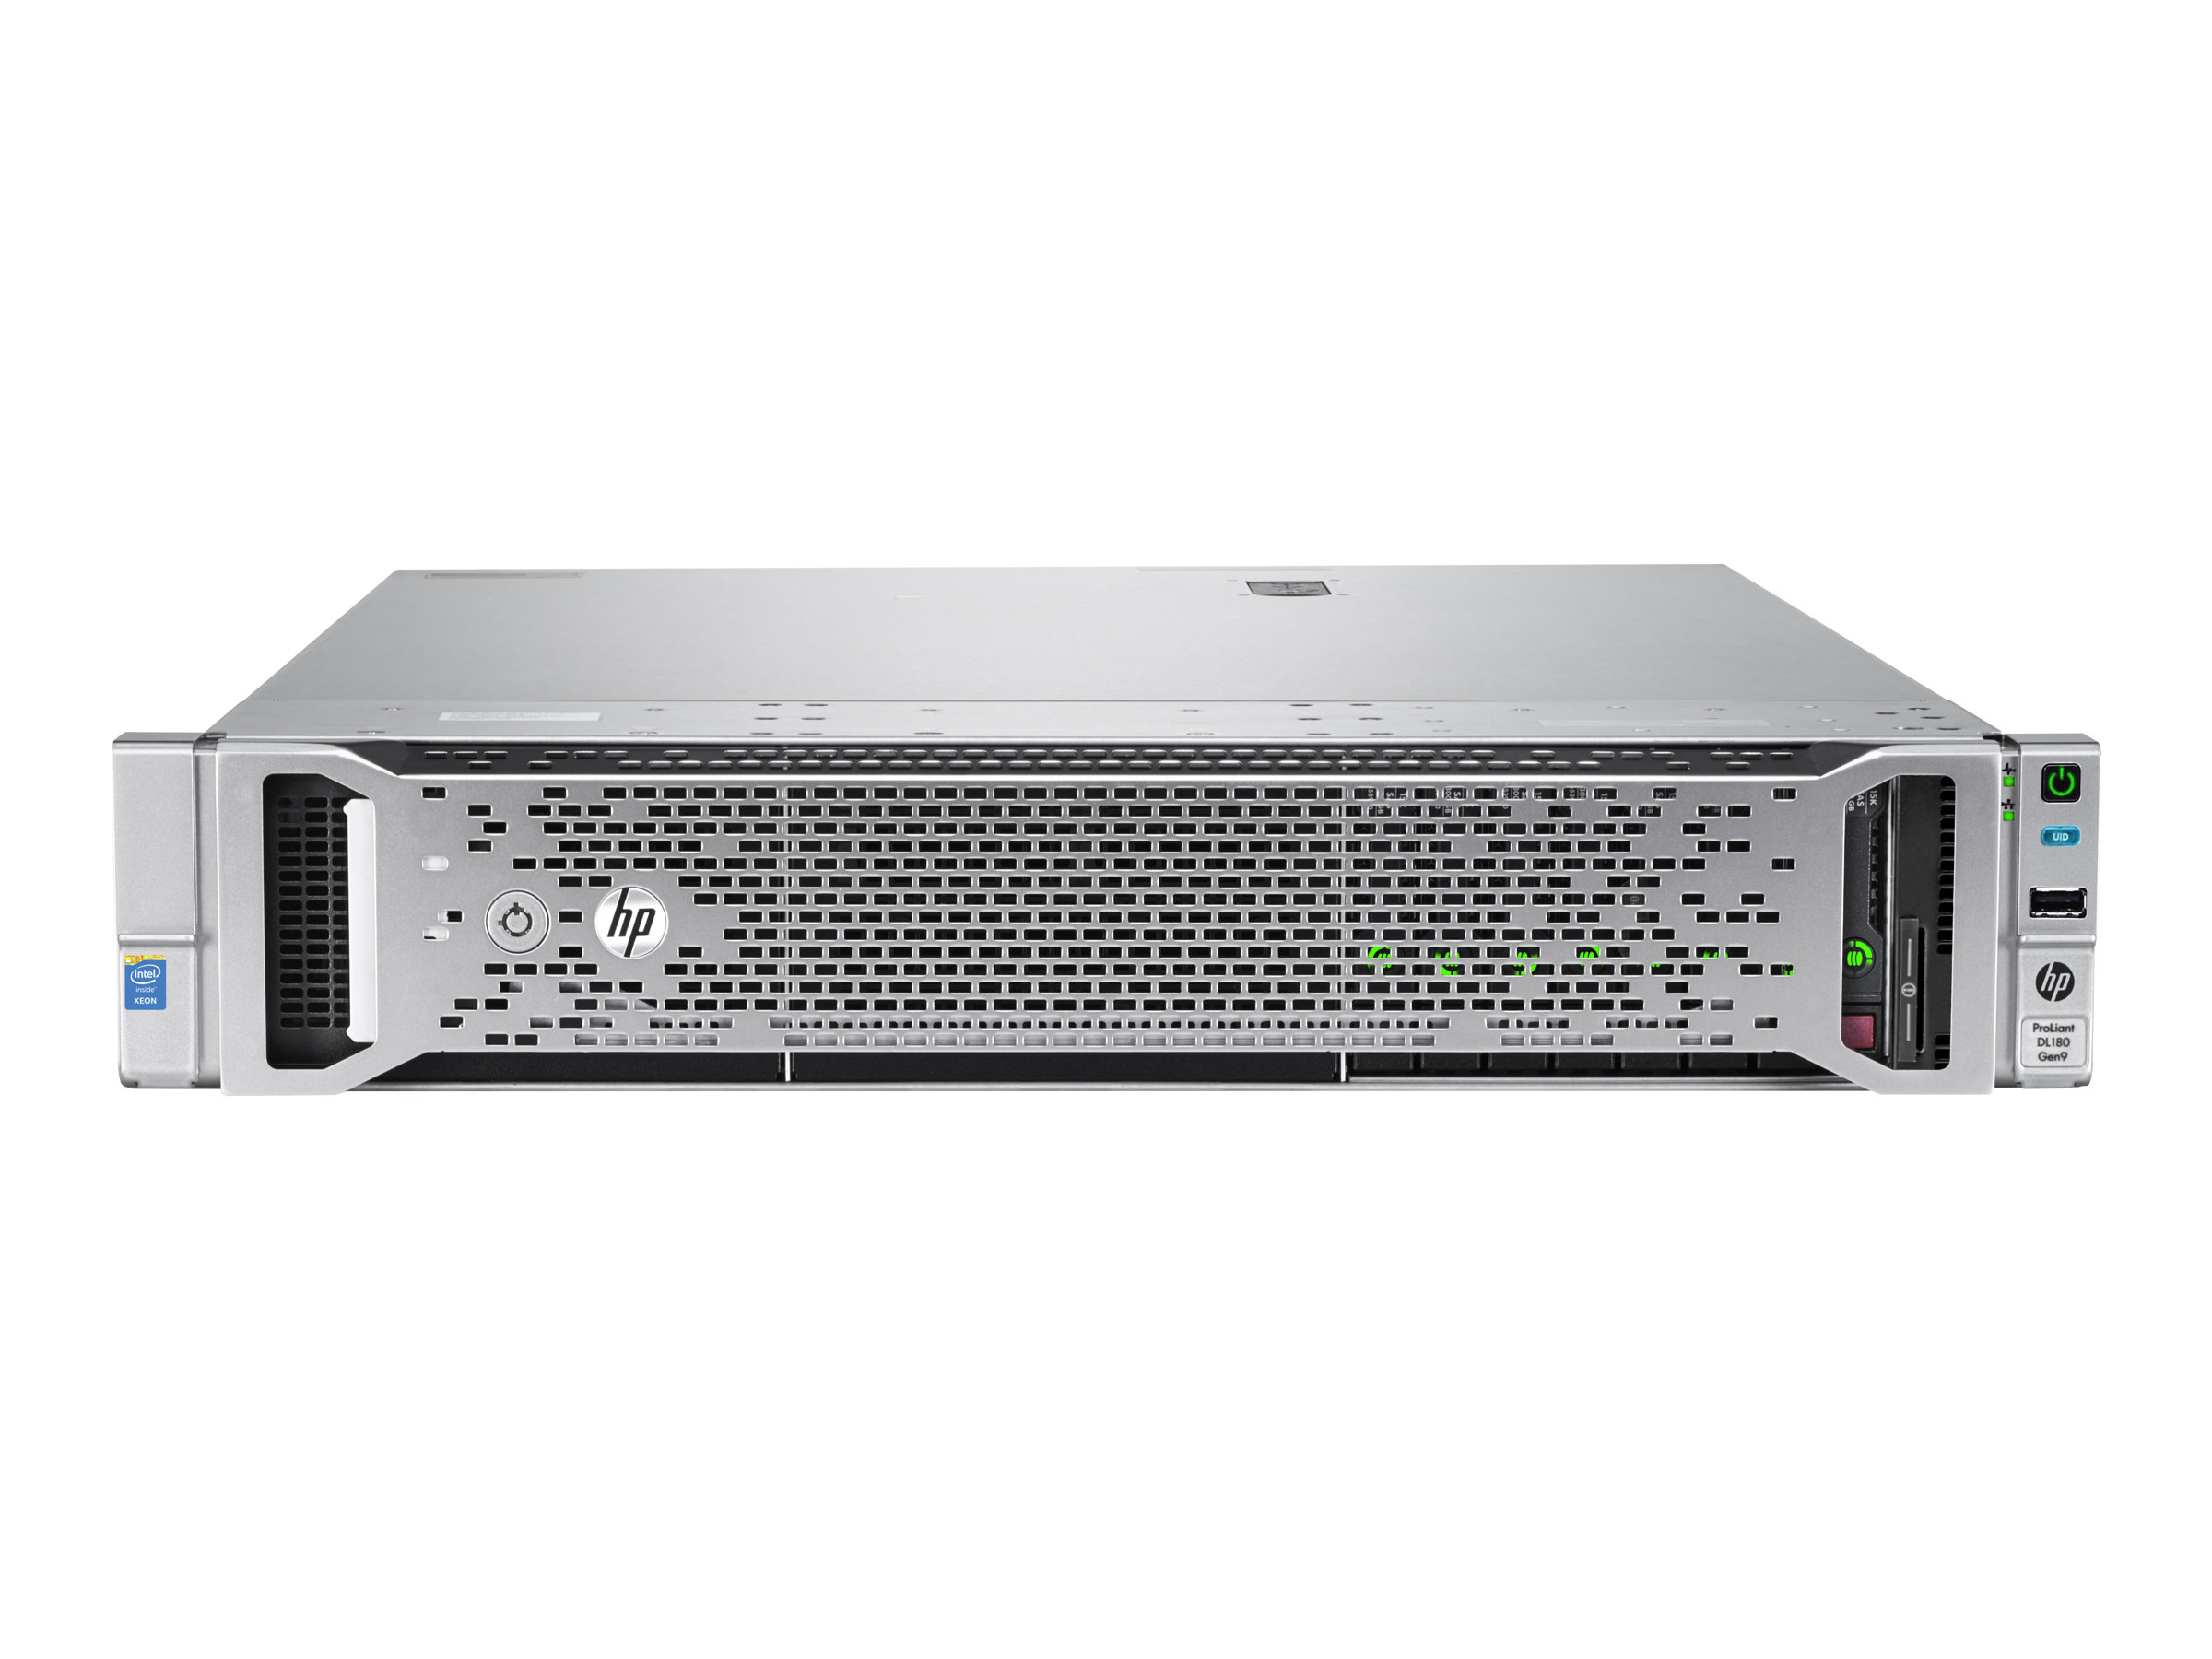 HPE ProLiant DL180 Gen9 - Server - Rack-Montage - 2U - zweiweg - 1 x Xeon E5-2620V4 / 2.1 GHz